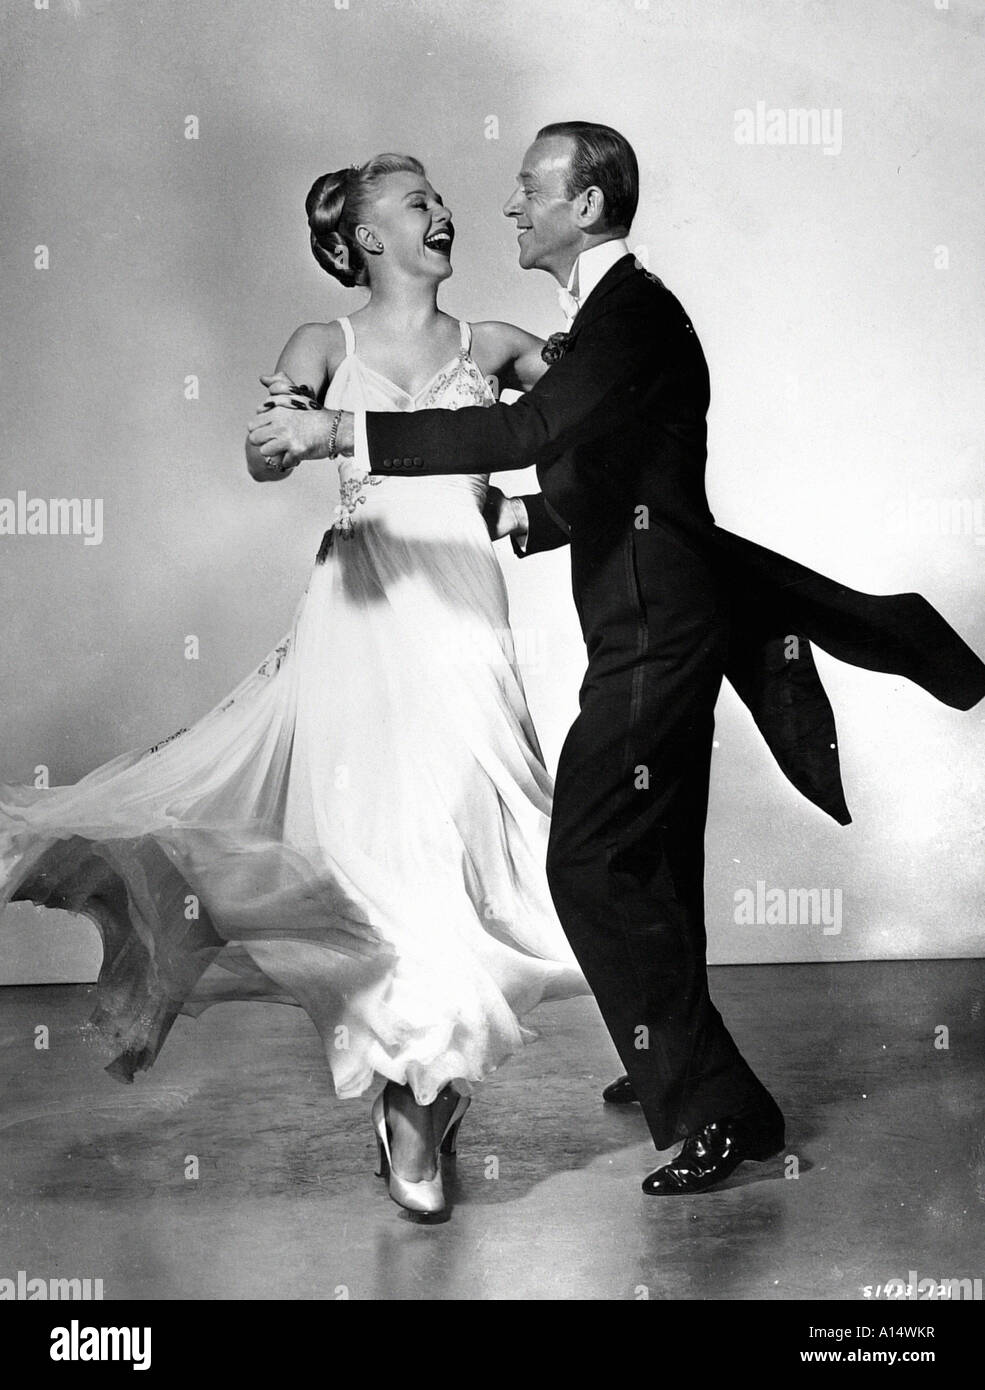 Ginger Rogers Fred Astaire Stock Photos & Ginger Rogers Fred